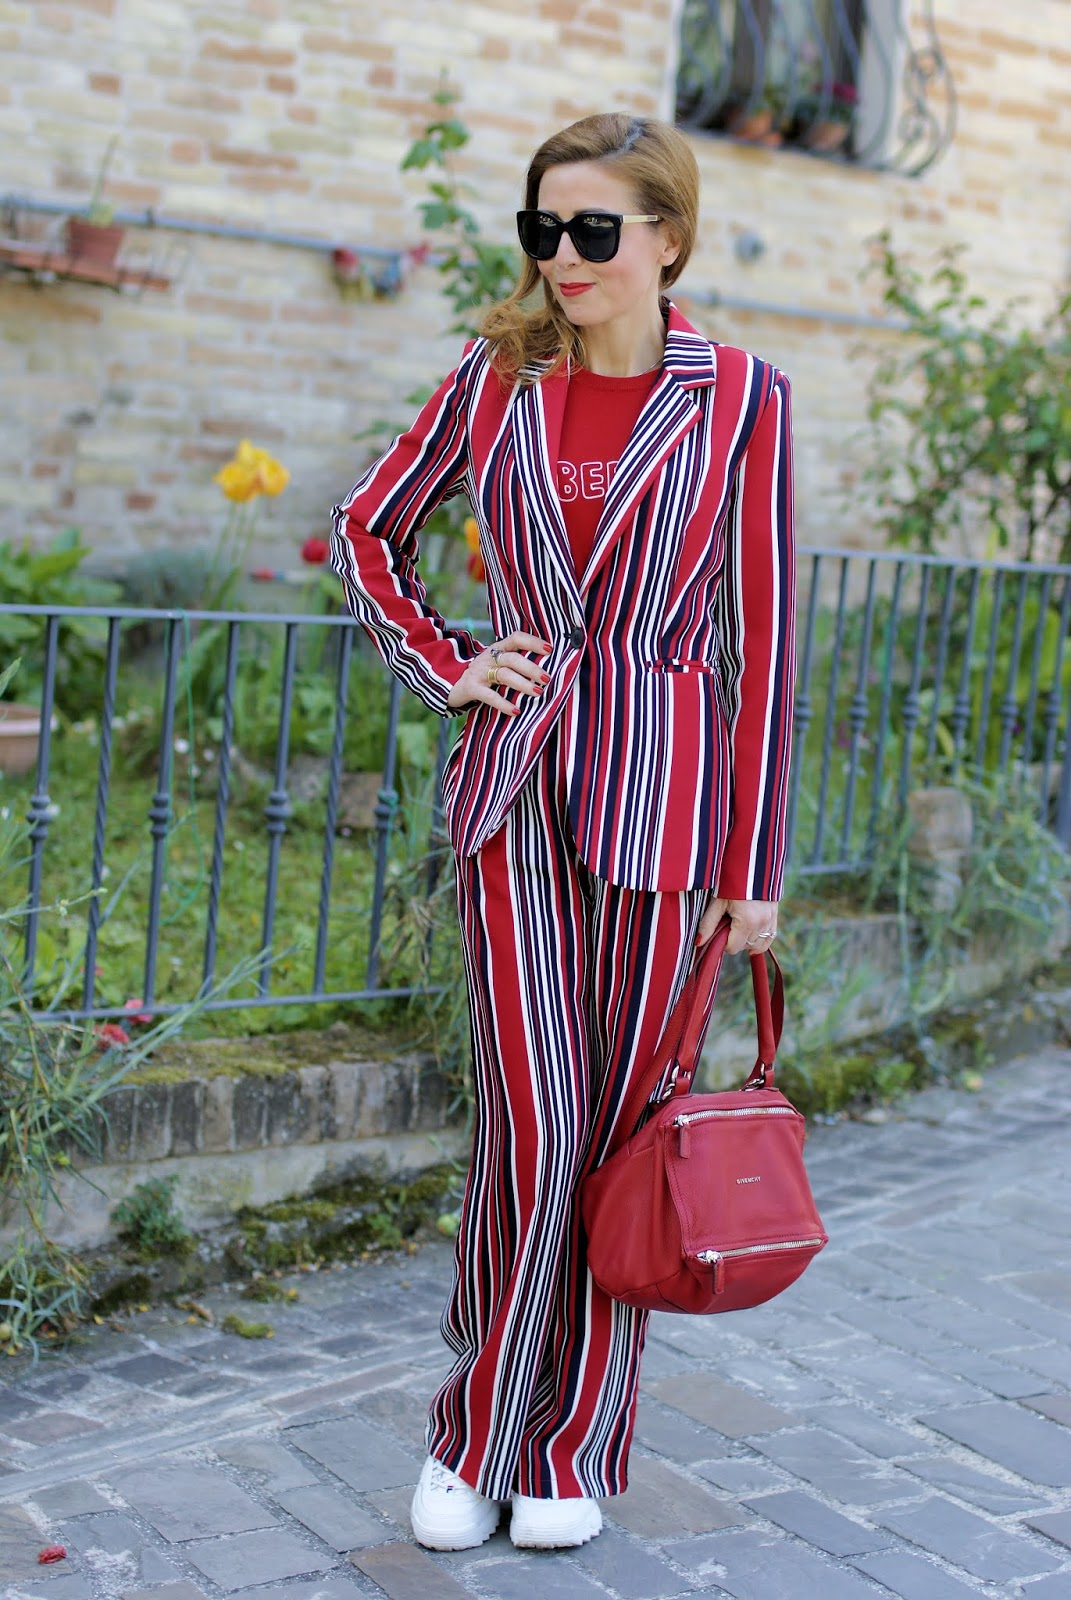 Suit up! A striped suit worn with sneakers on Fashion and Cookies fashion blog, fashion blogger style